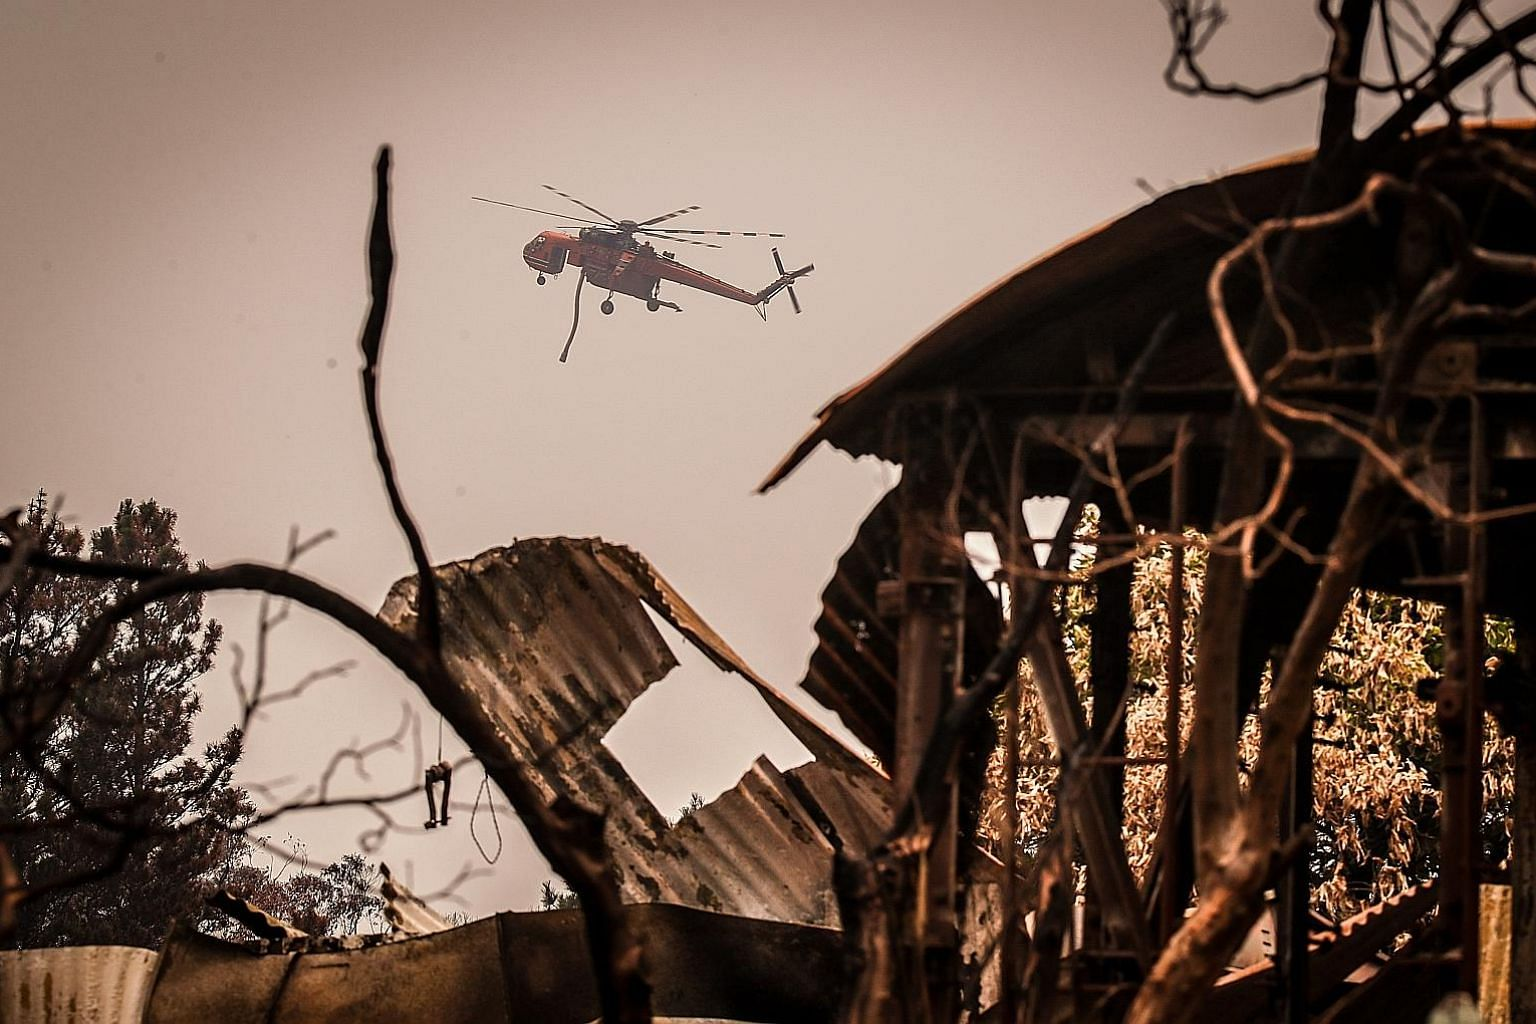 A helicopter with a water hose flying over a house destroyed by bush fires near the town of Bilpin, New South Wales, on Sunday. The state has borne the brunt of the fires, which have burned out more than 2.5 million ha of forest and bush land and des